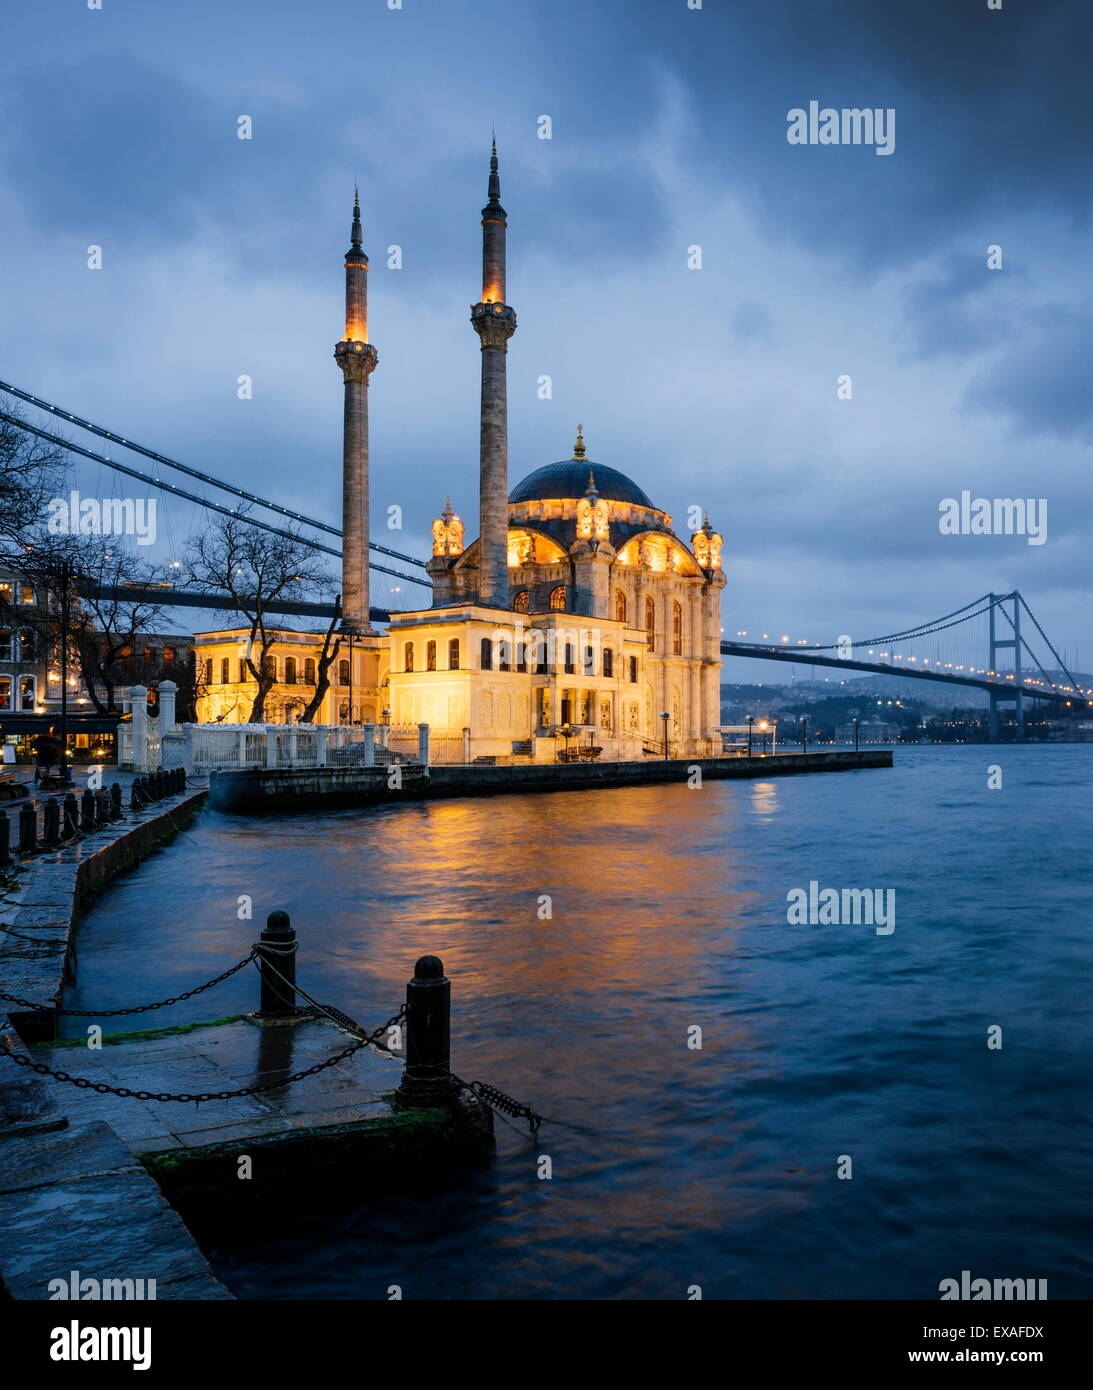 Exterior of Ortakoy Mosque and Bosphorus bridge at night, Ortakoy, Istanbul, Turkey, Europe - Stock Image